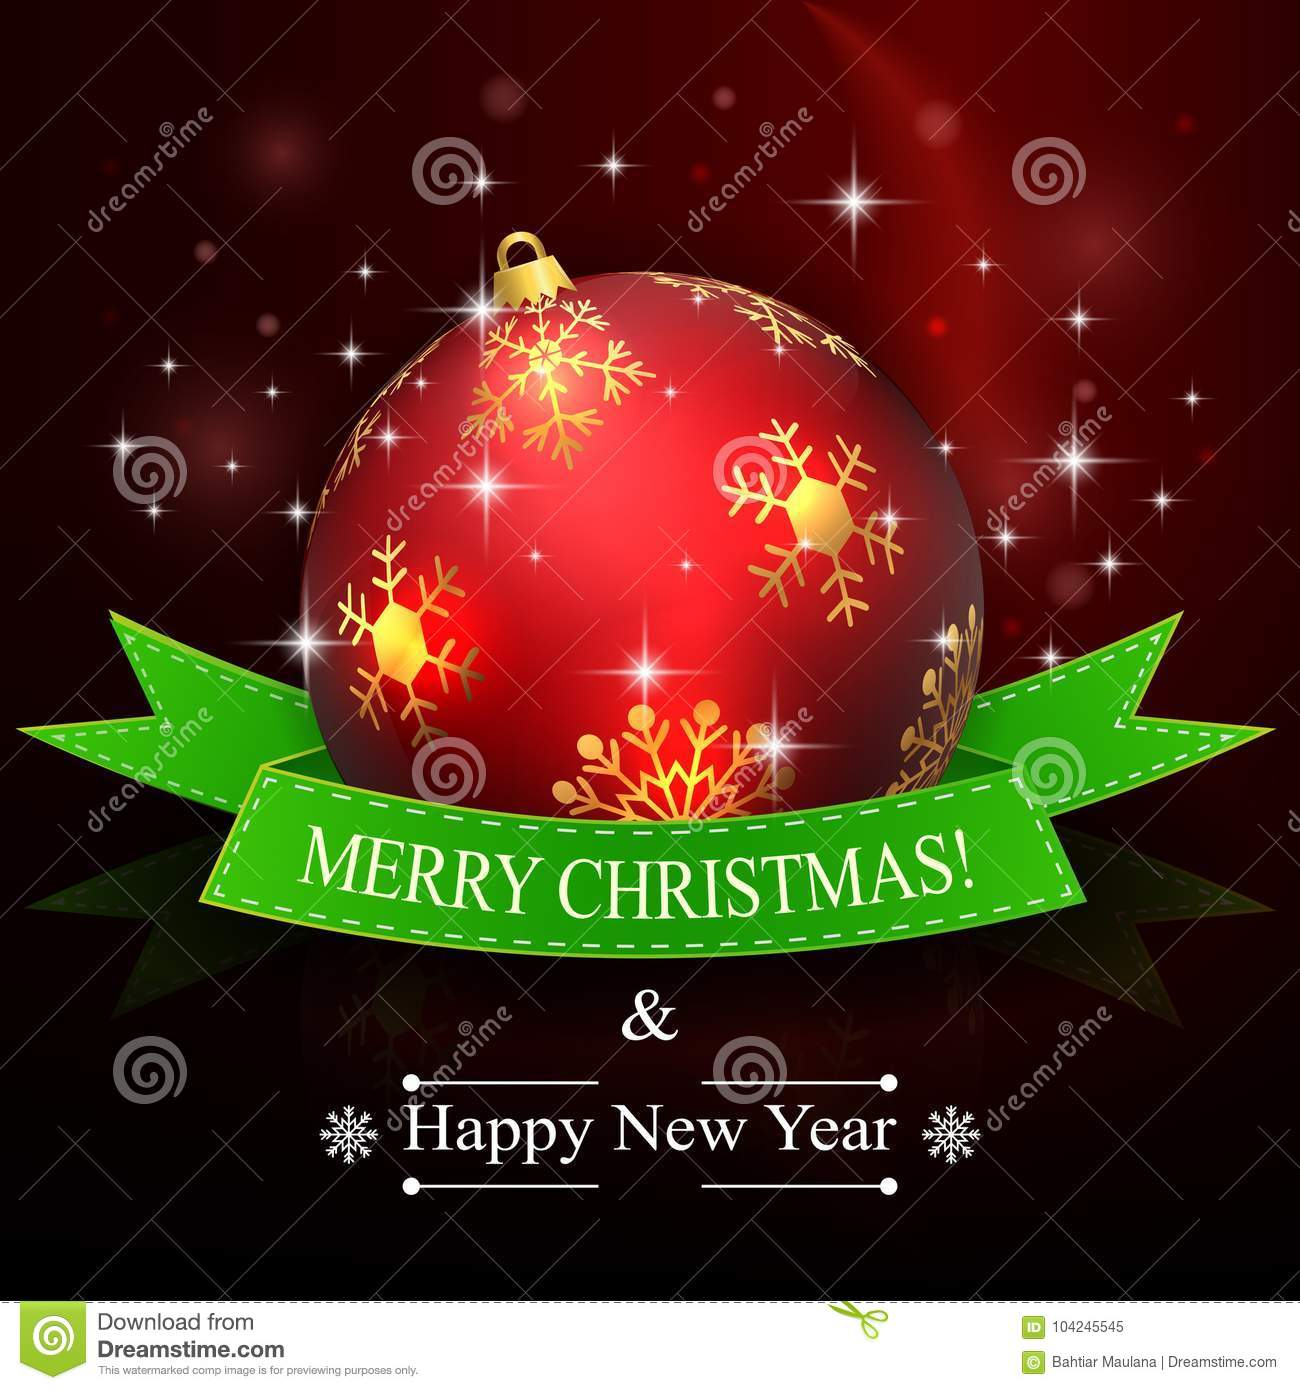 merry christmas and happy new year background with red ball and ribbon